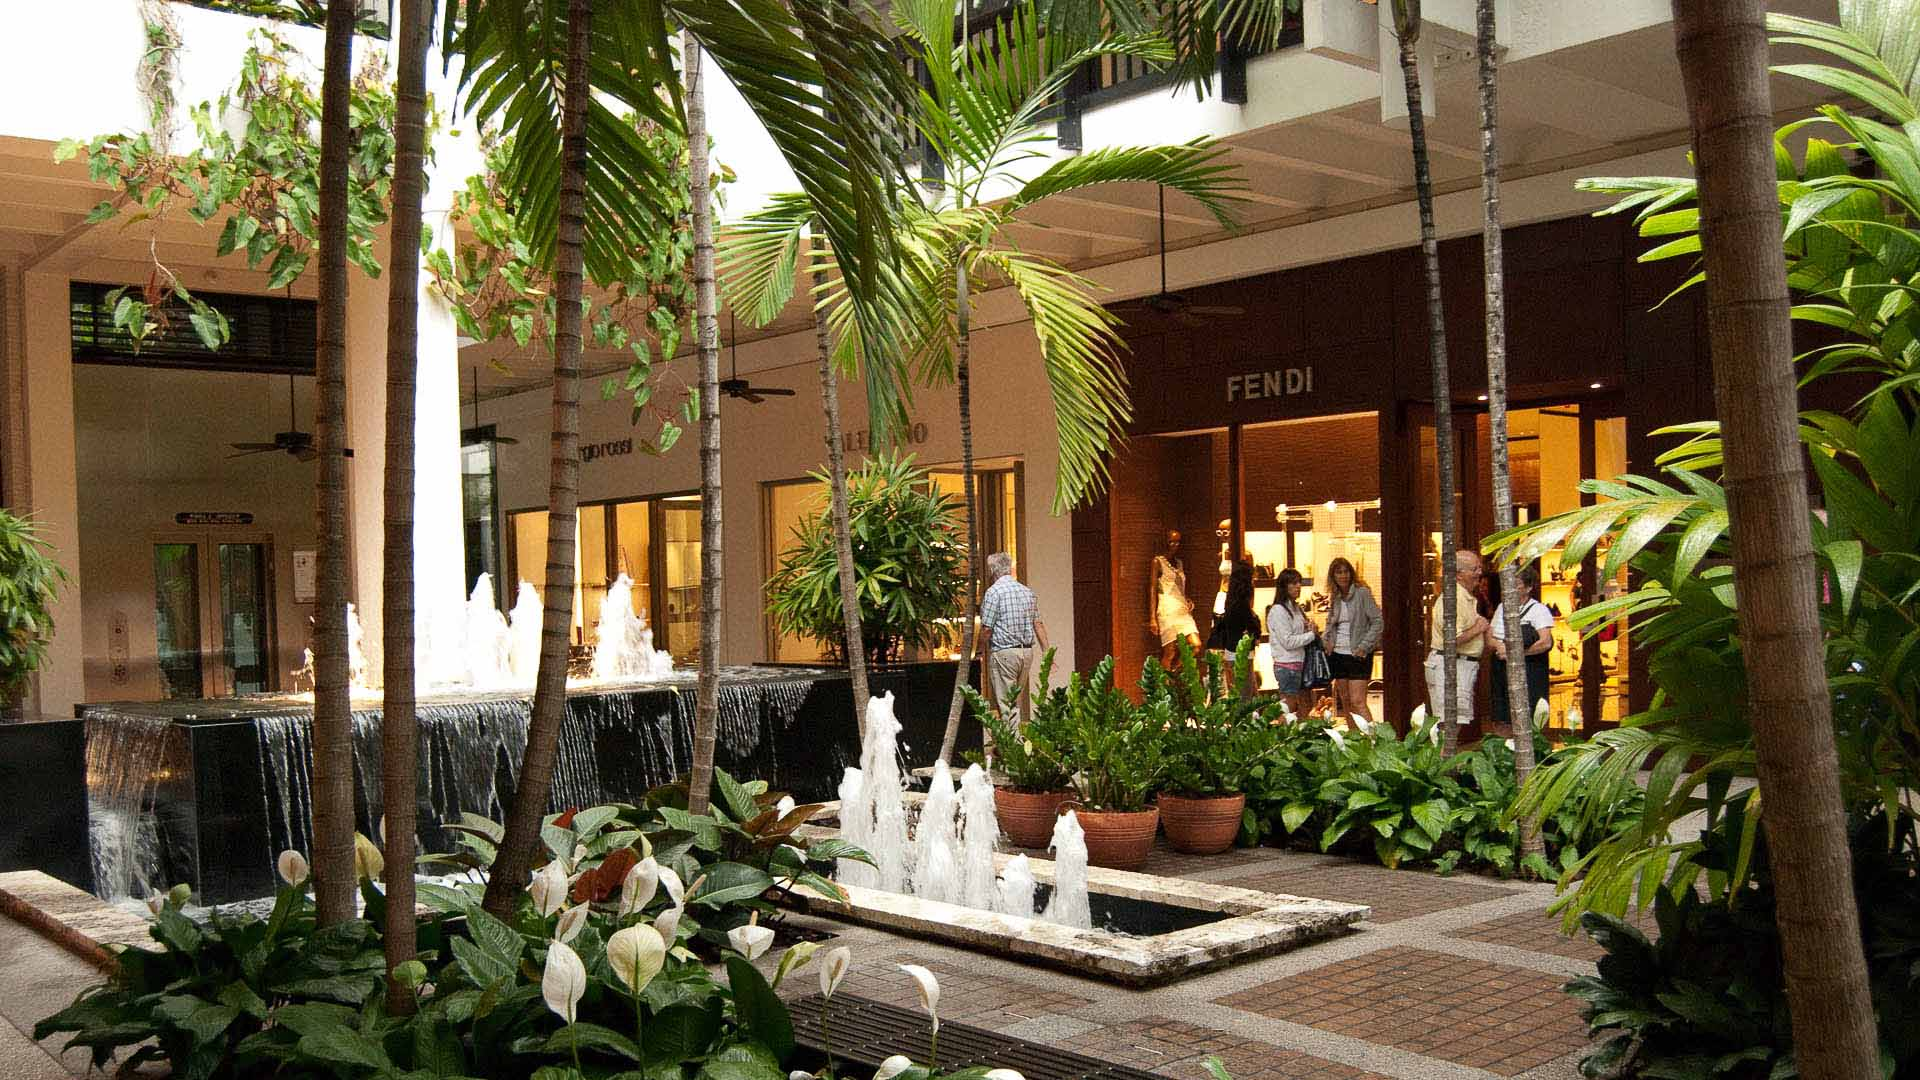 New Stores To Look Out For In Bal Harbour Shops Haute Living